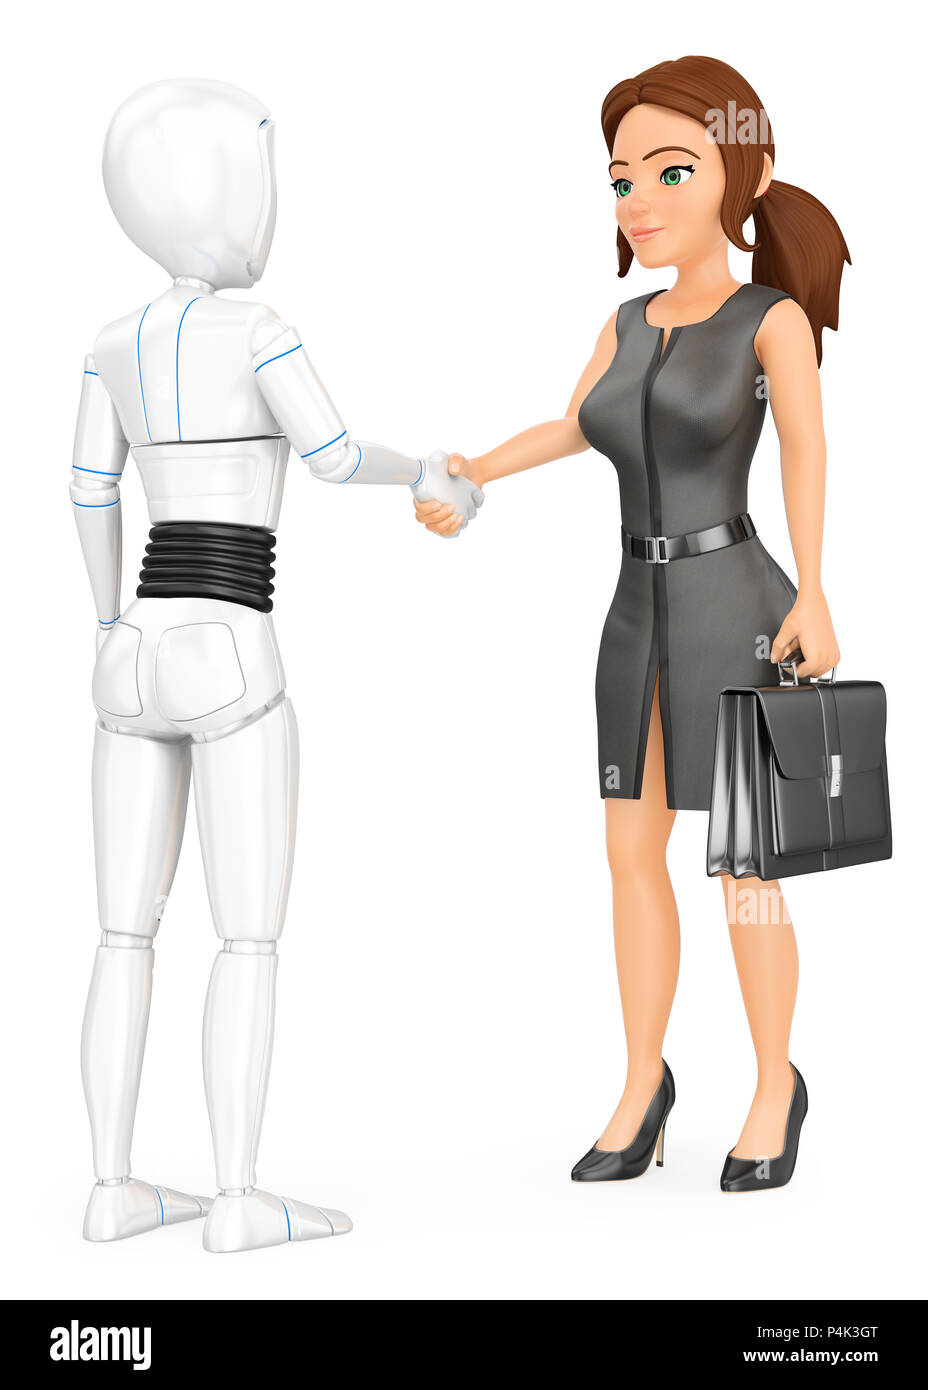 3d futuristic android illustration. Humanoid robot shaking hand with a business woman. Isolated white background. - Stock Image